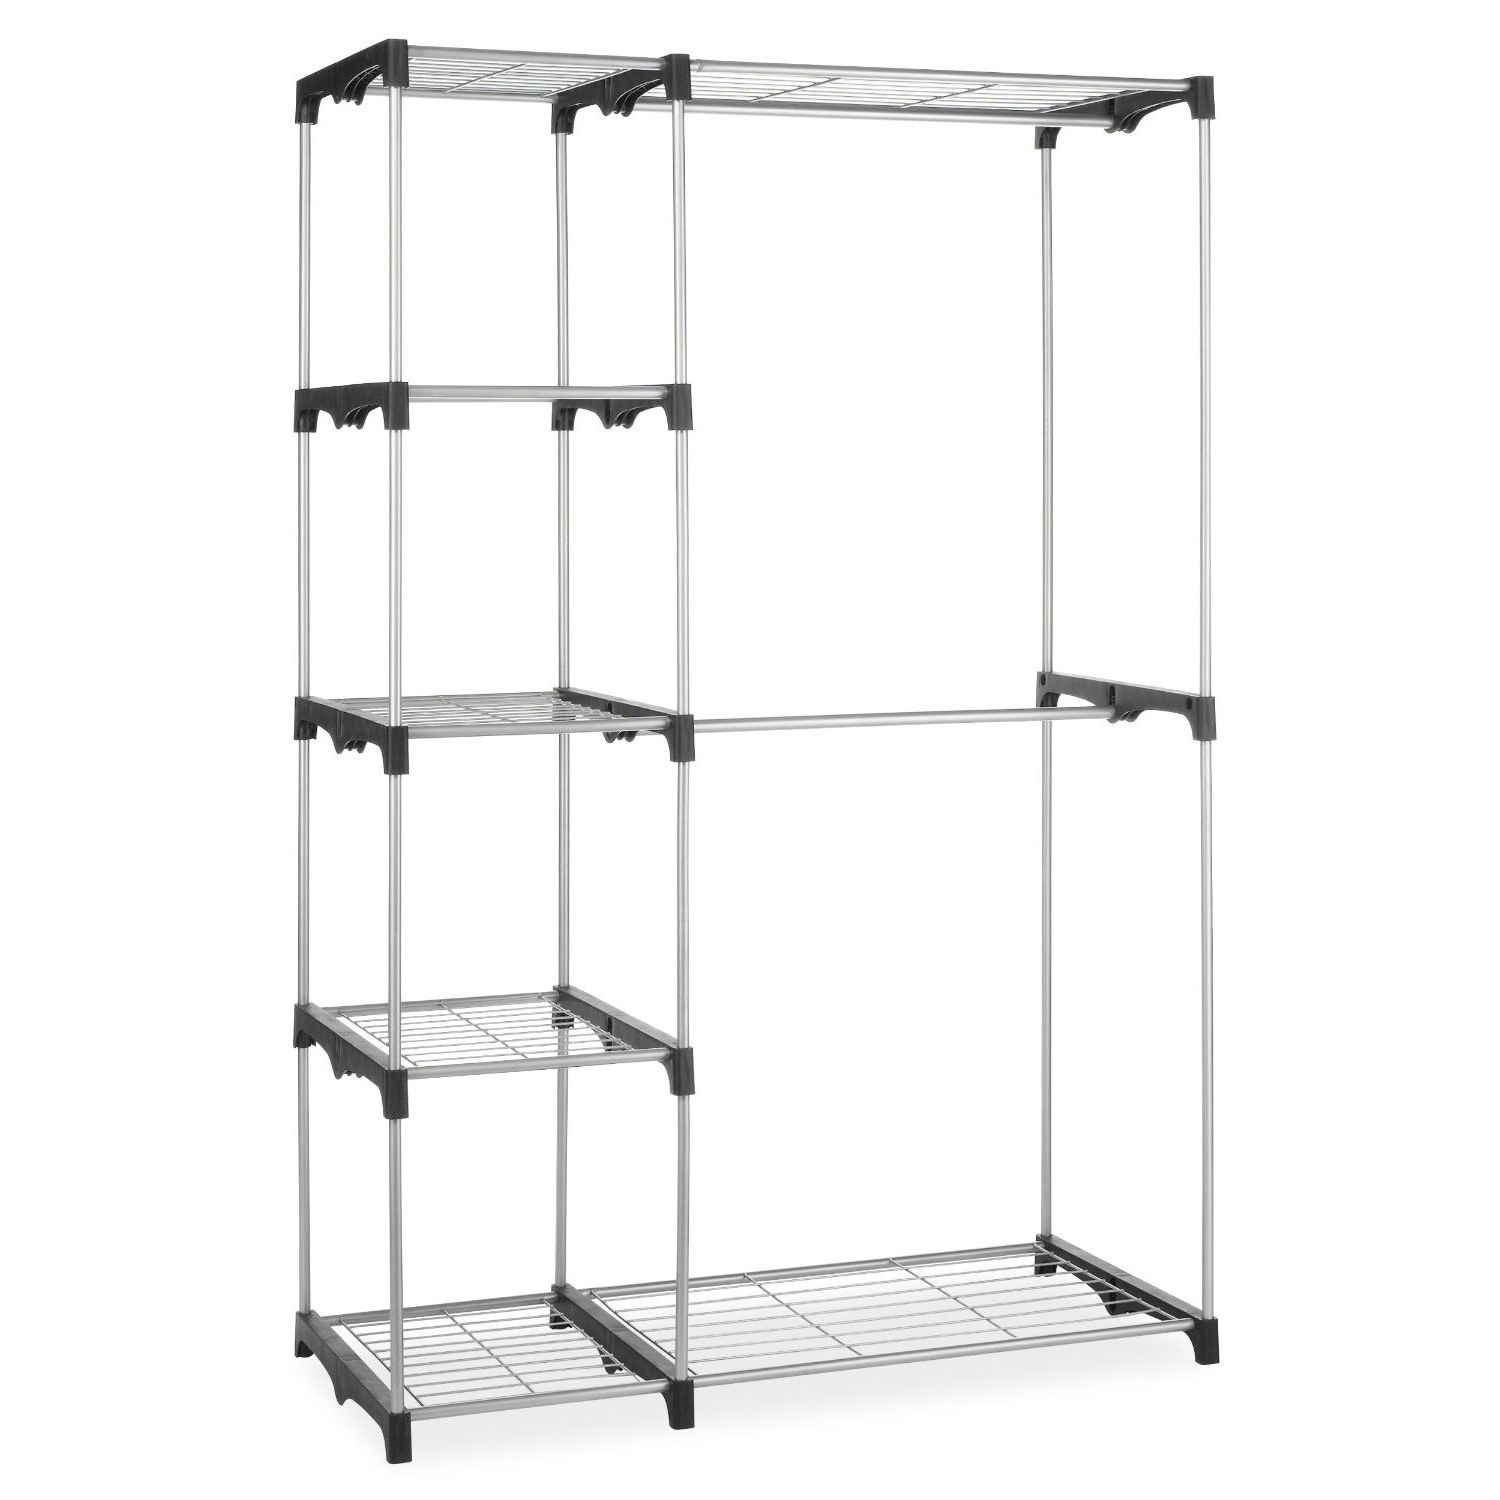 black welded dp amazon rack with shelf capacity width shelves muscle lb storage com depth height x industrial